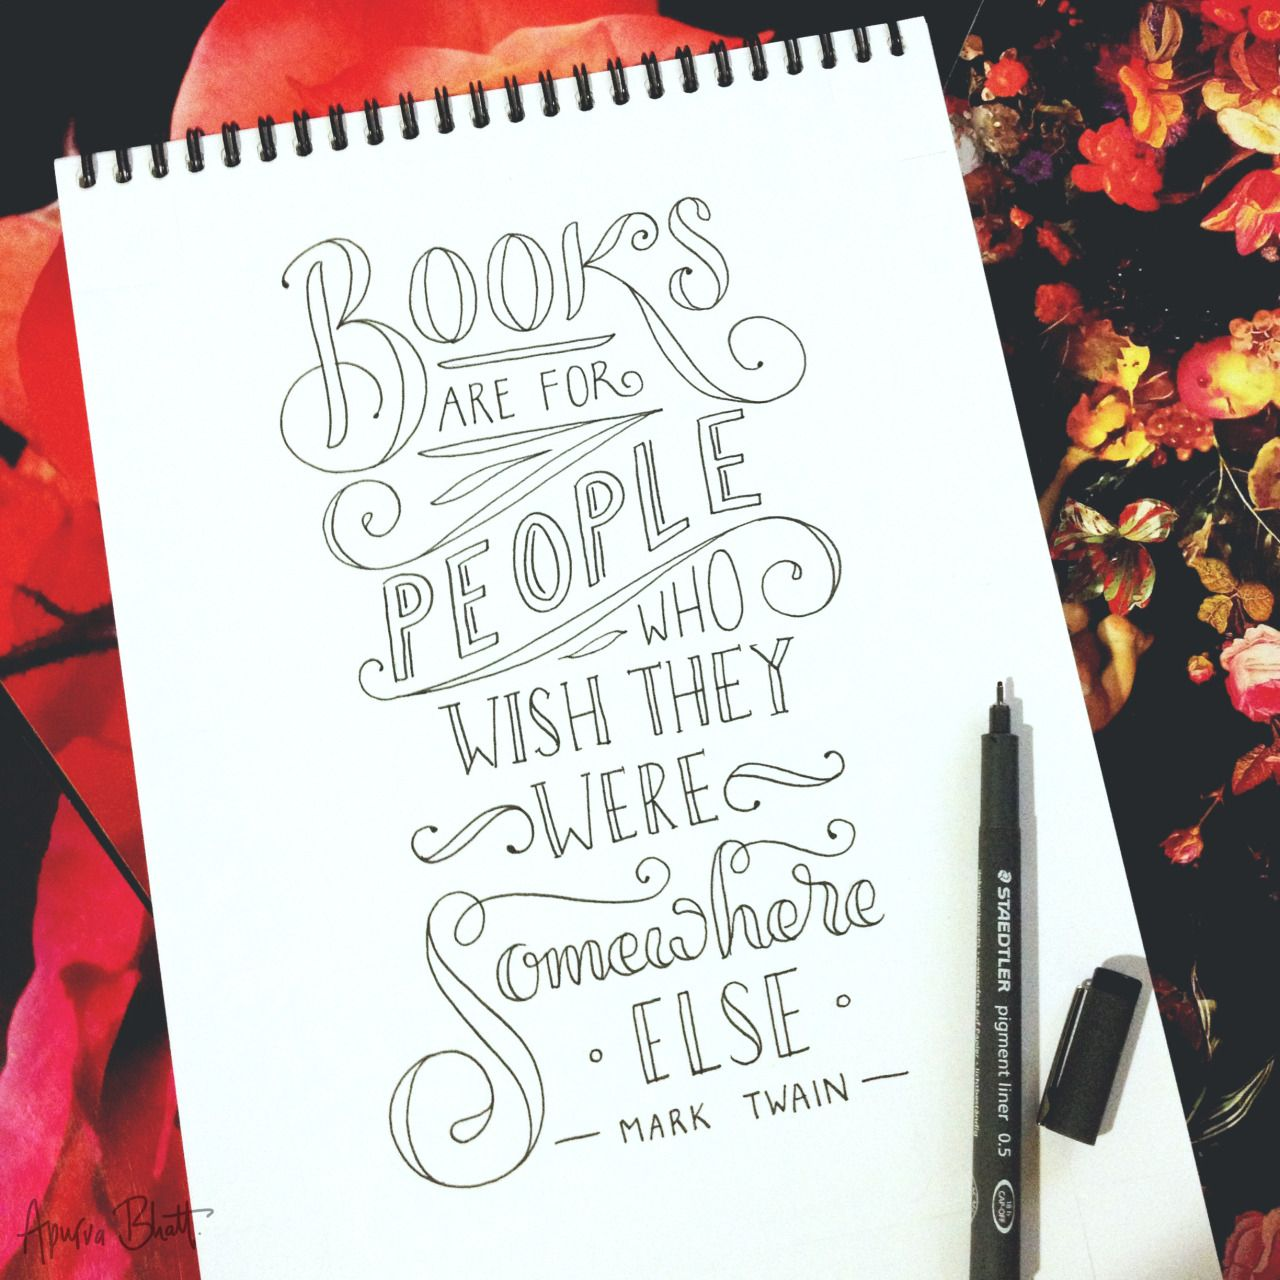 Hand lettering of a quote by Mark Twain Lettered as part of